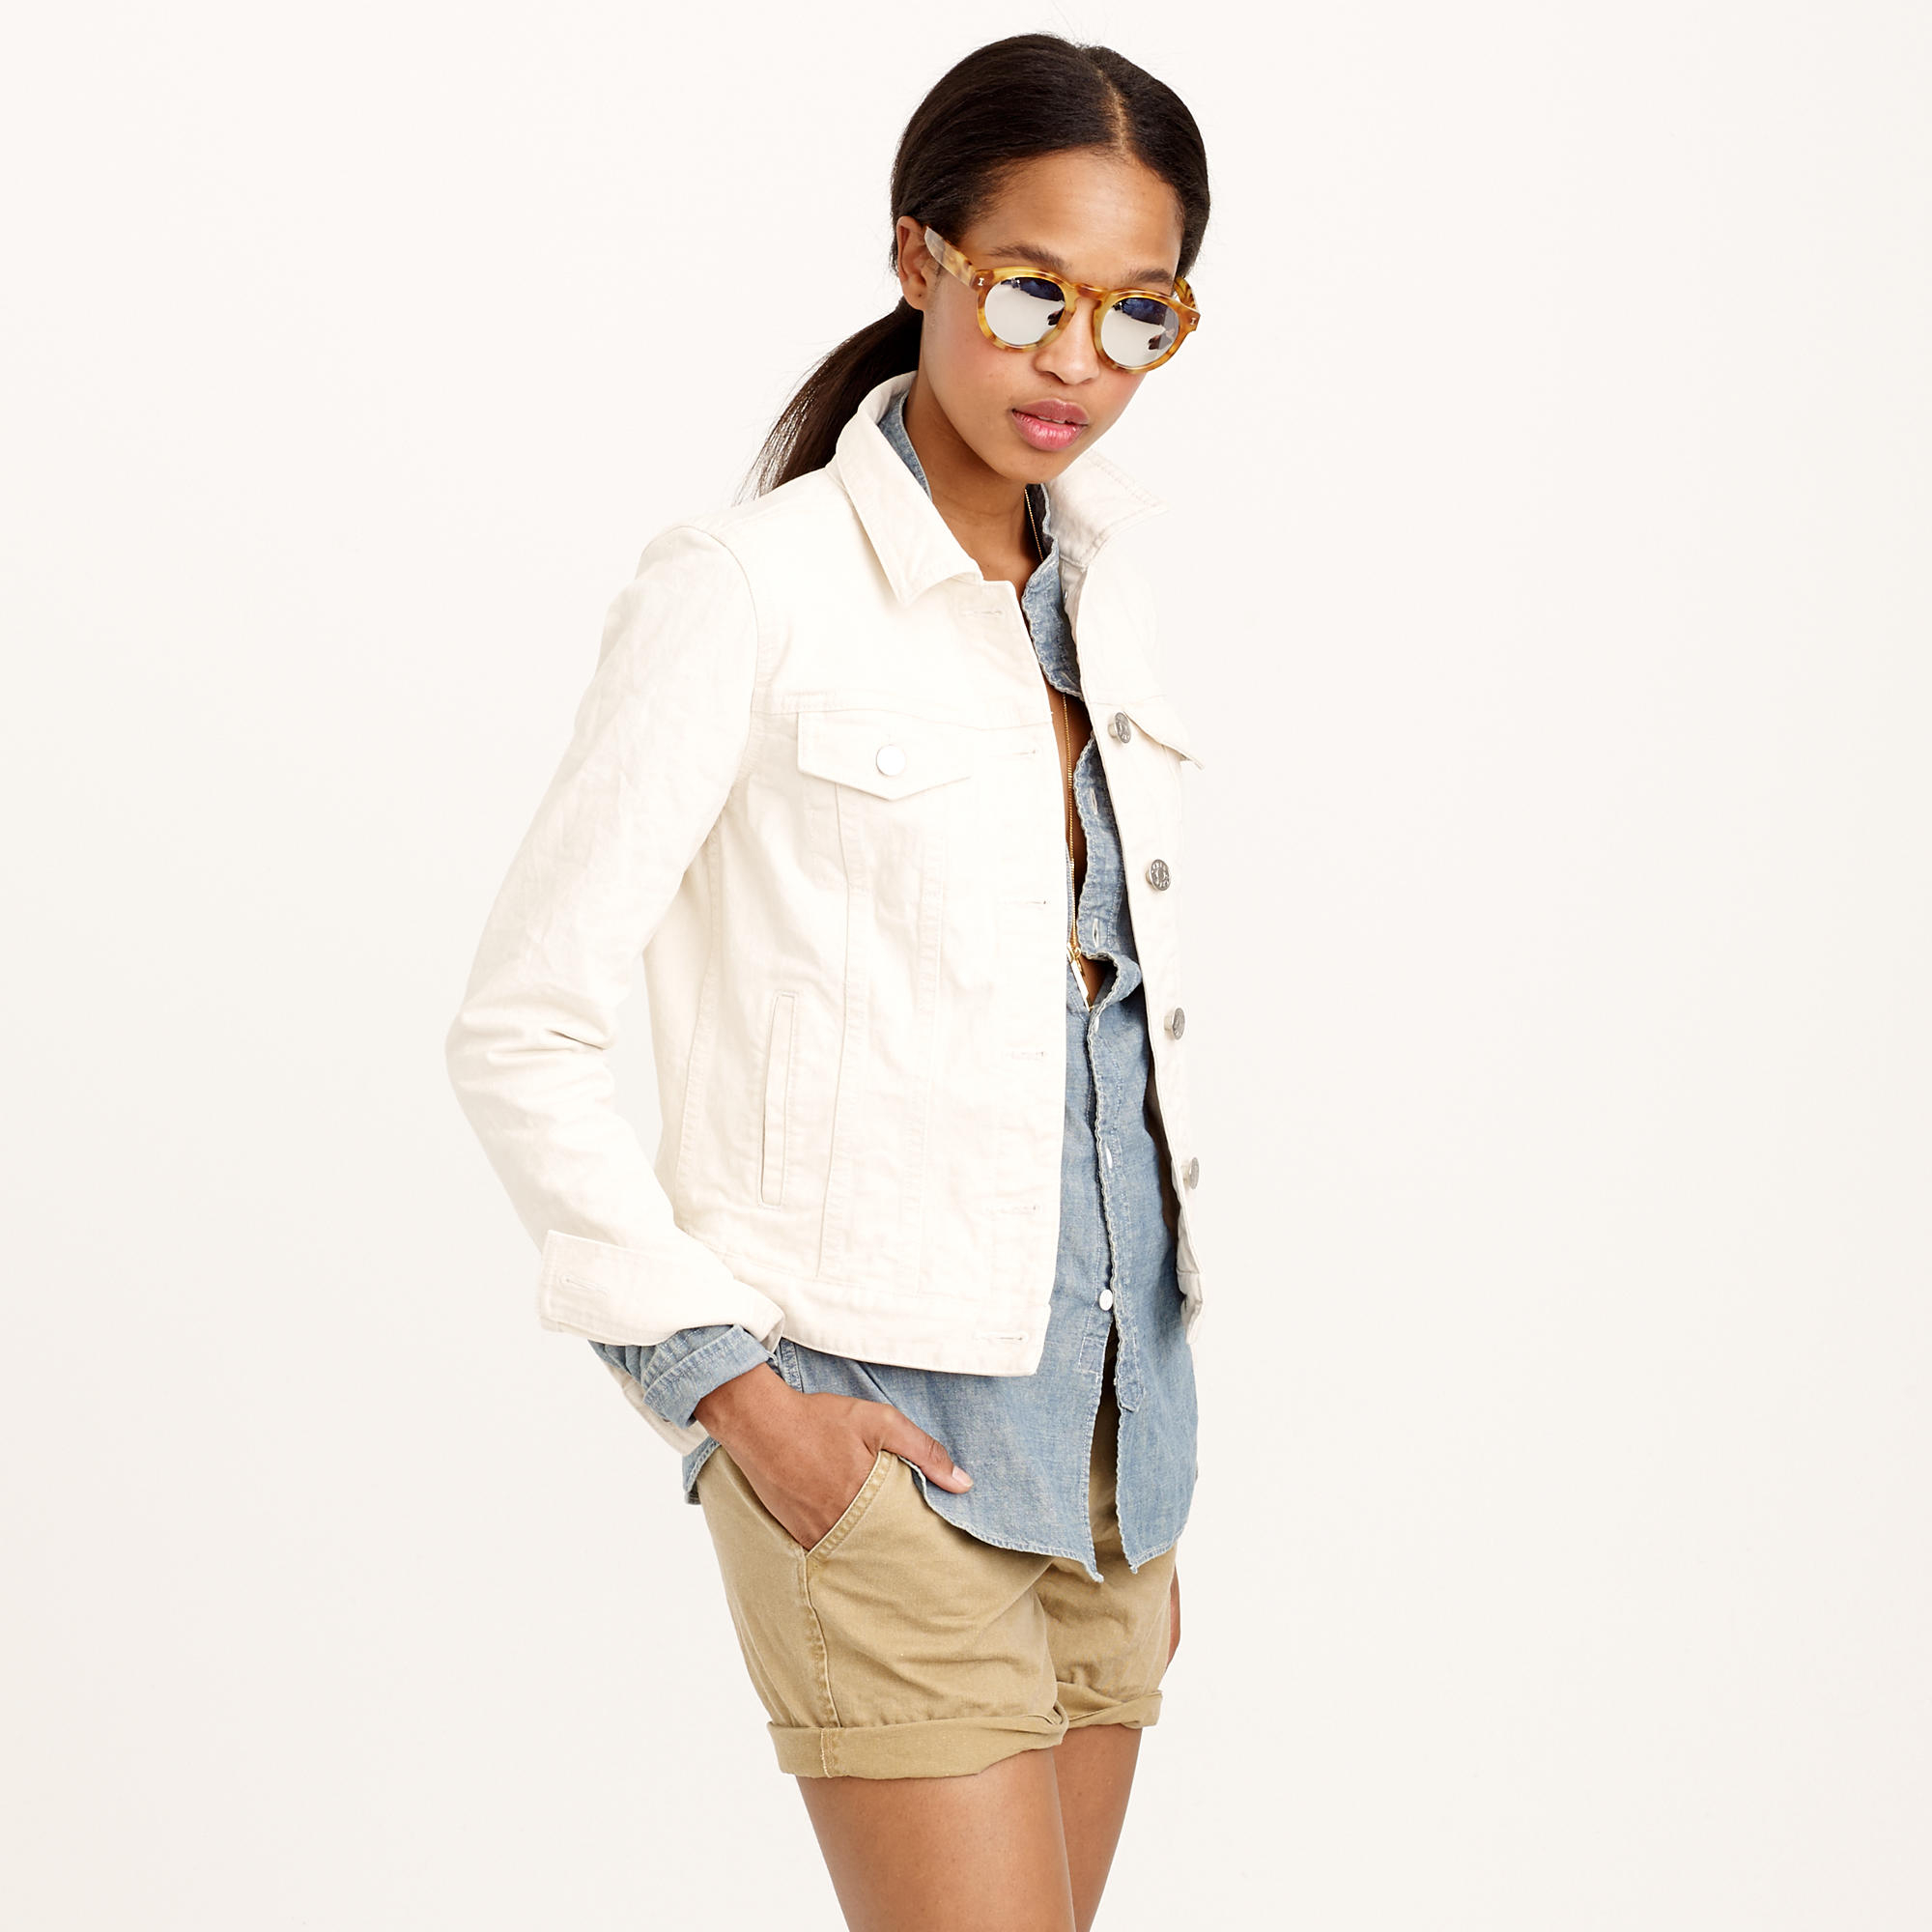 Jcrew Denim Jacket In Ecru Wash In Natural  Lyst-8044